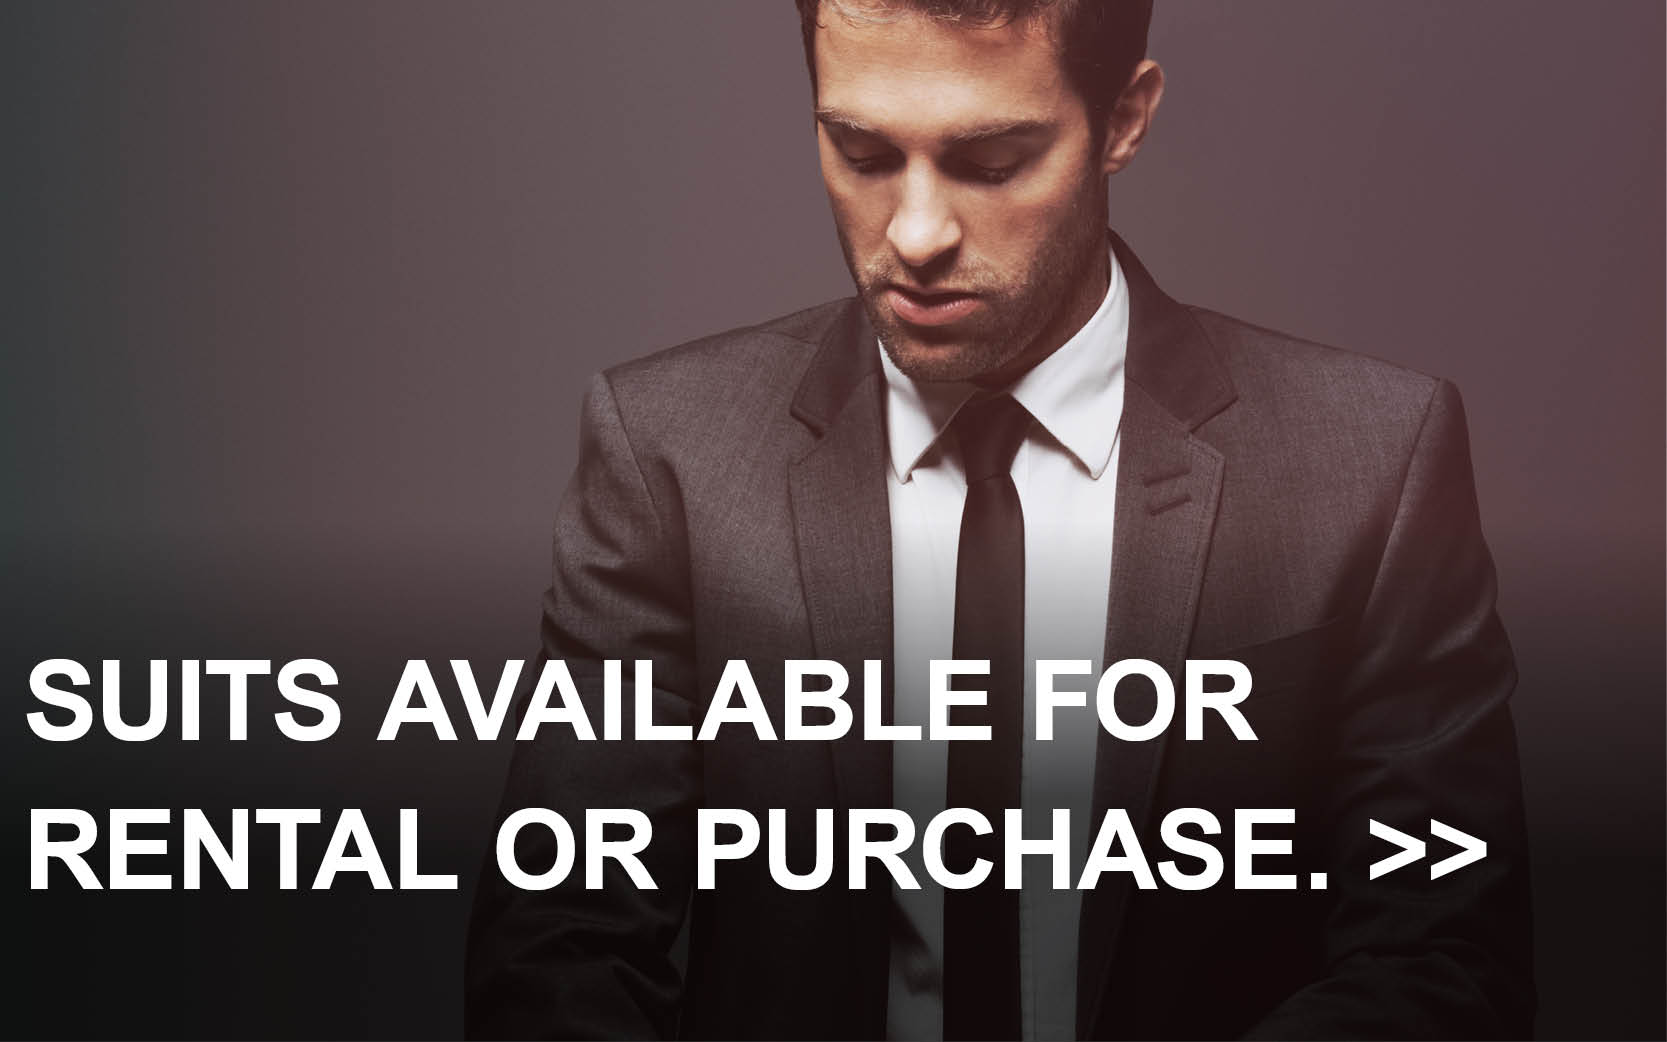 Suits available for rental or purchase